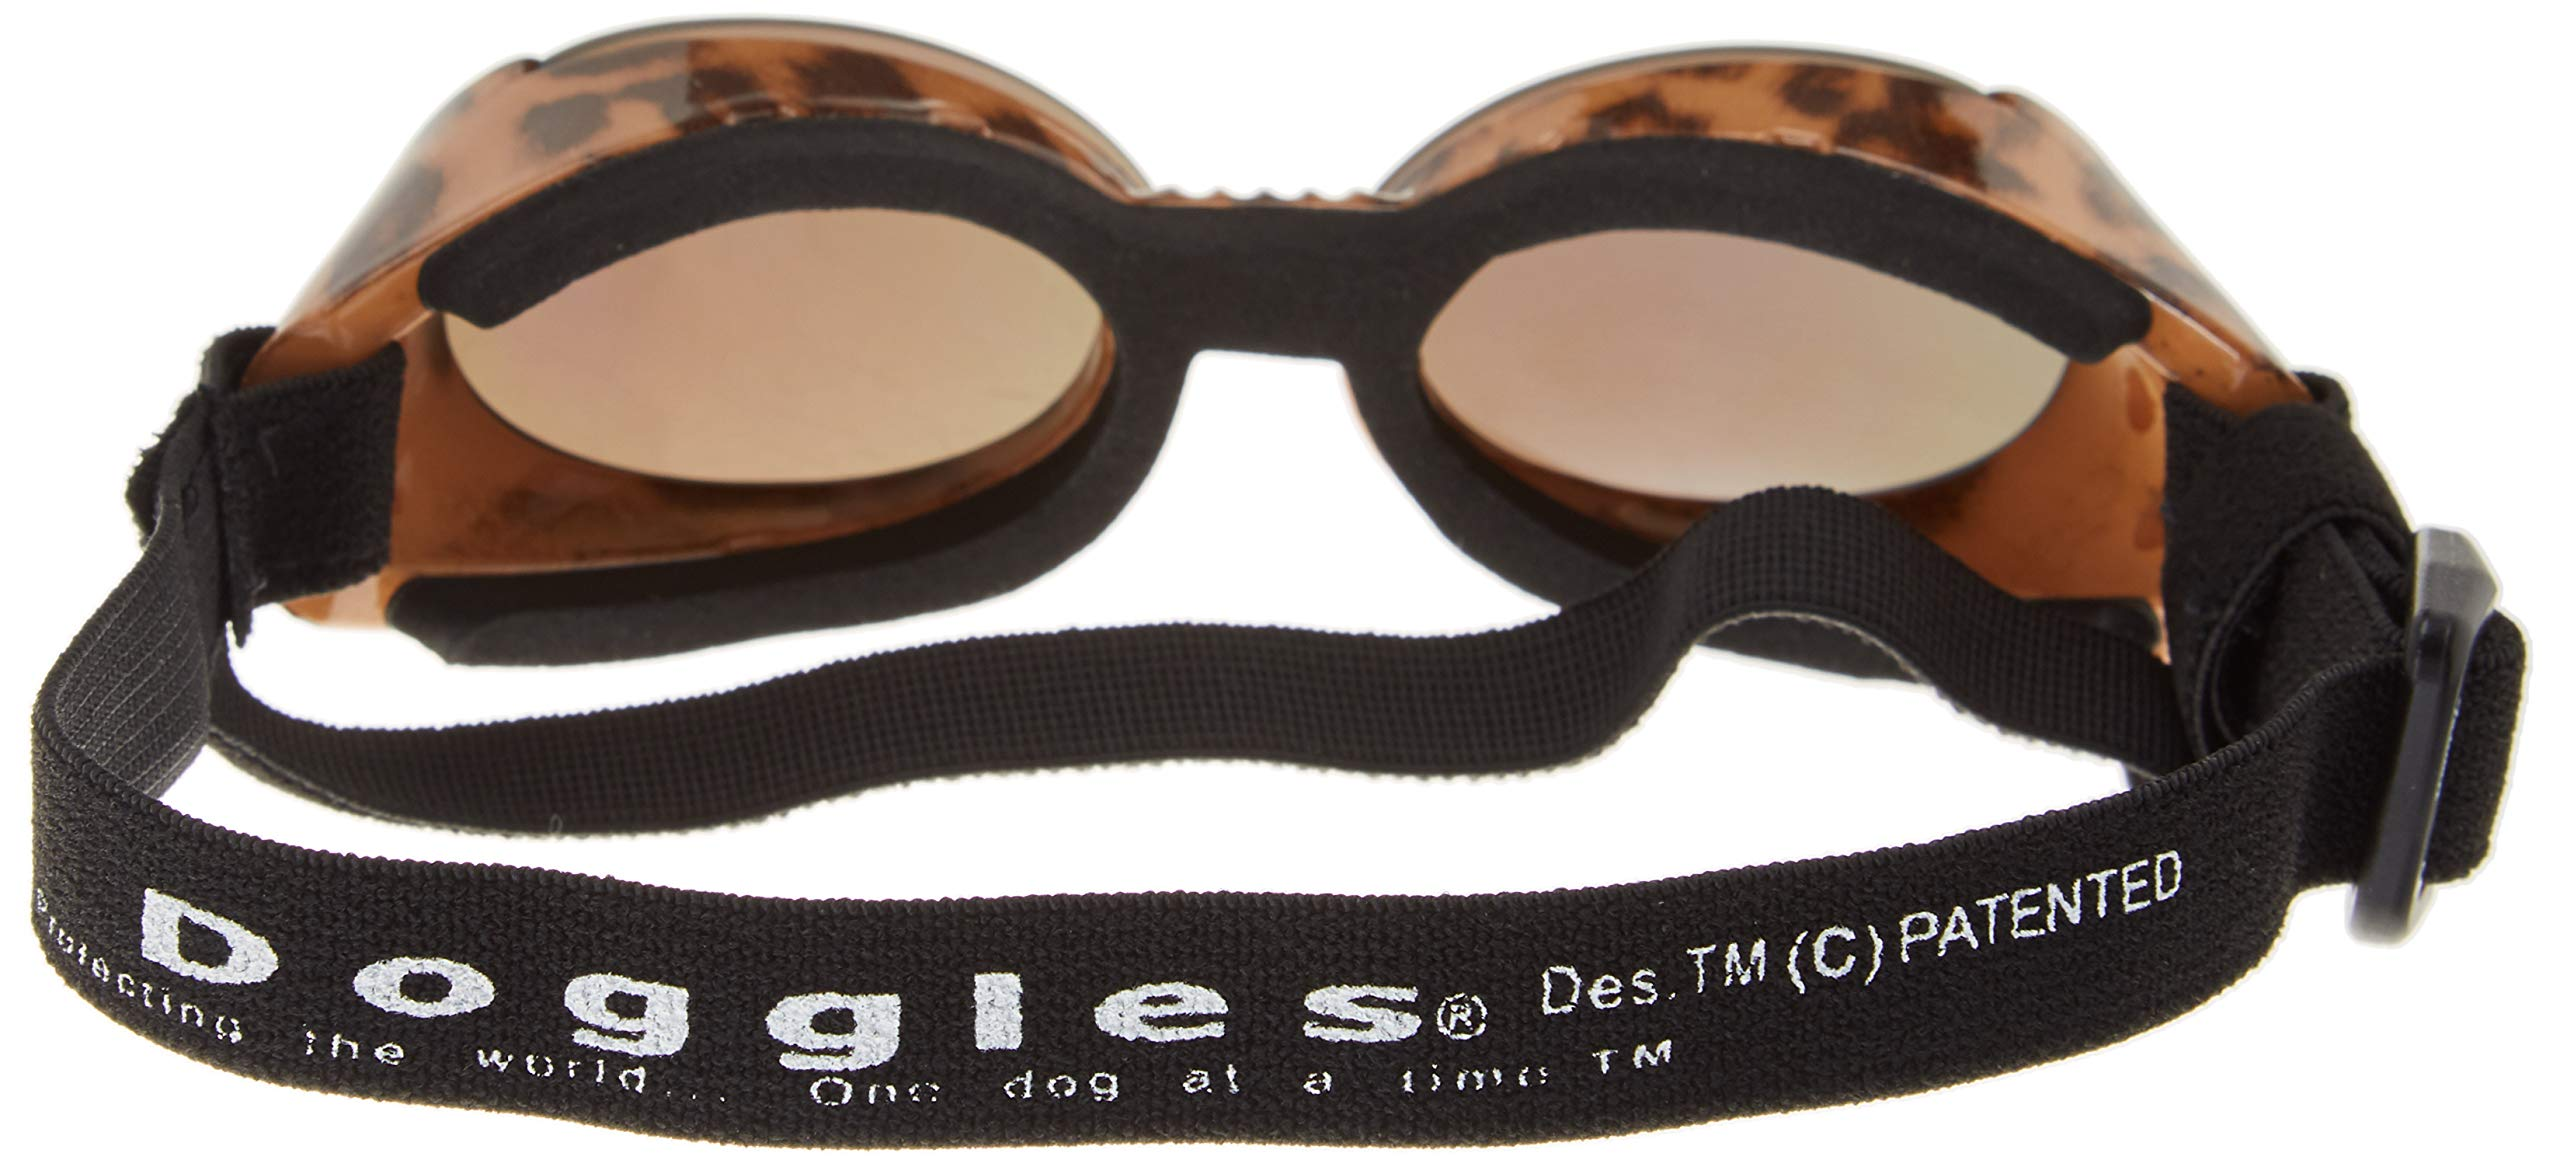 Doggles ILS Small Leopard and Smoke Lens by Doggles